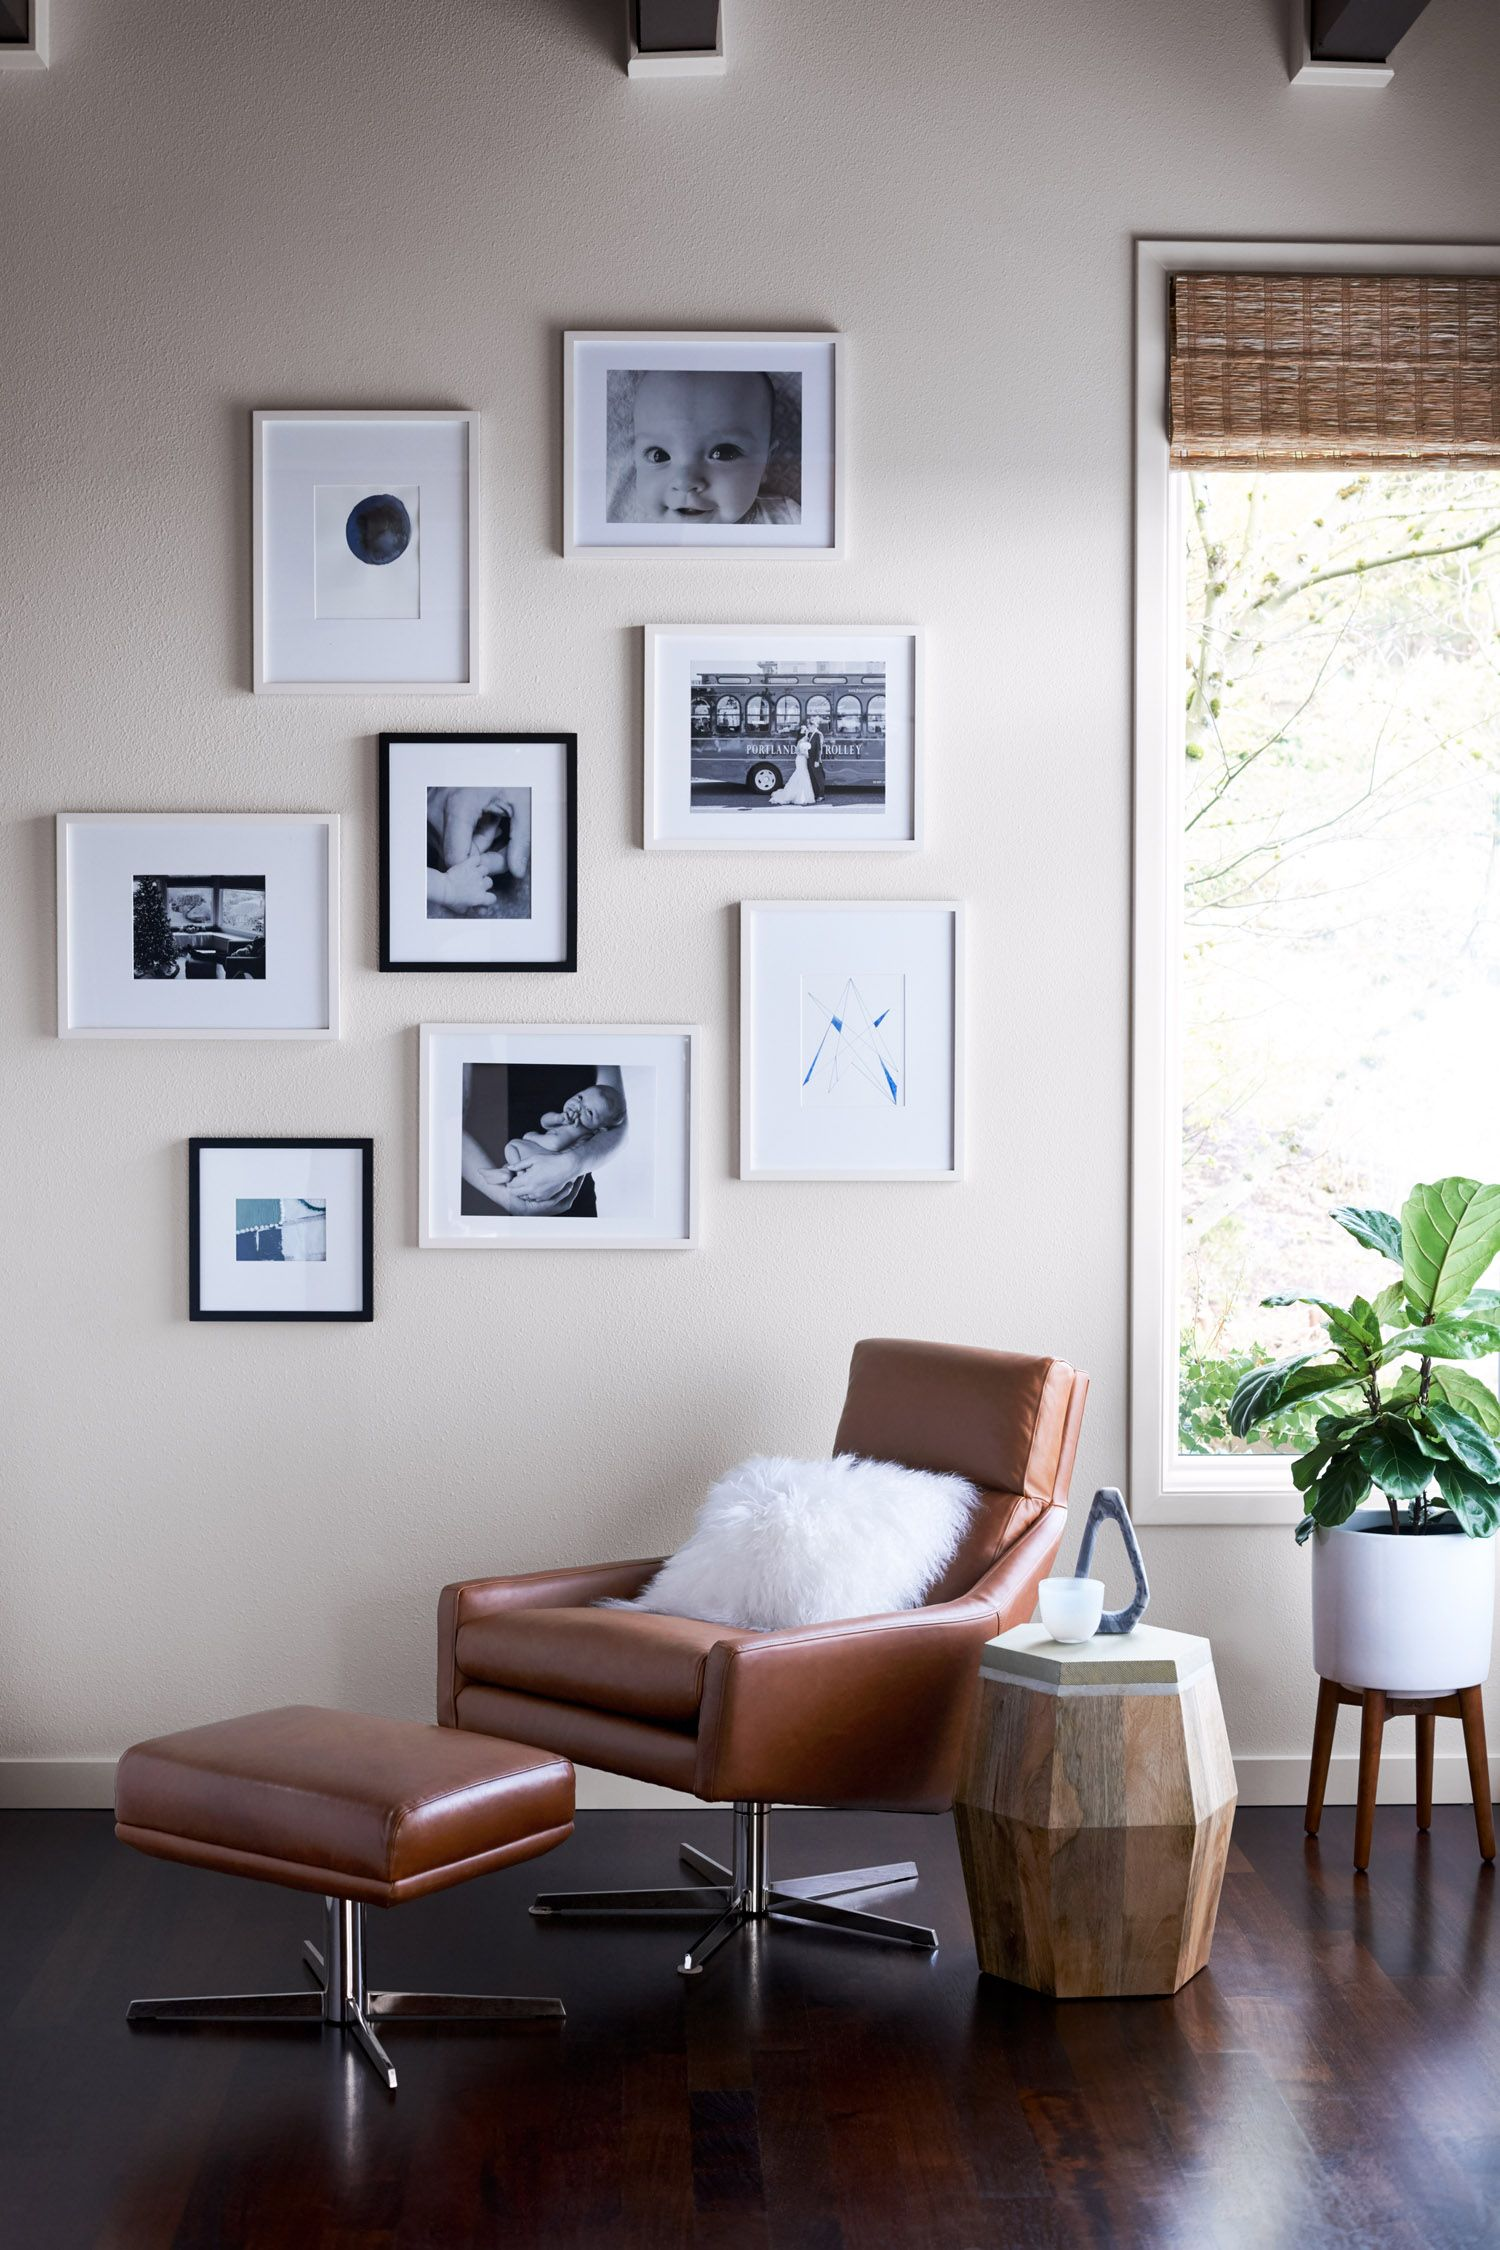 west elm - Portland Home Makeover from west elm Design Crew | 休闲区 ...